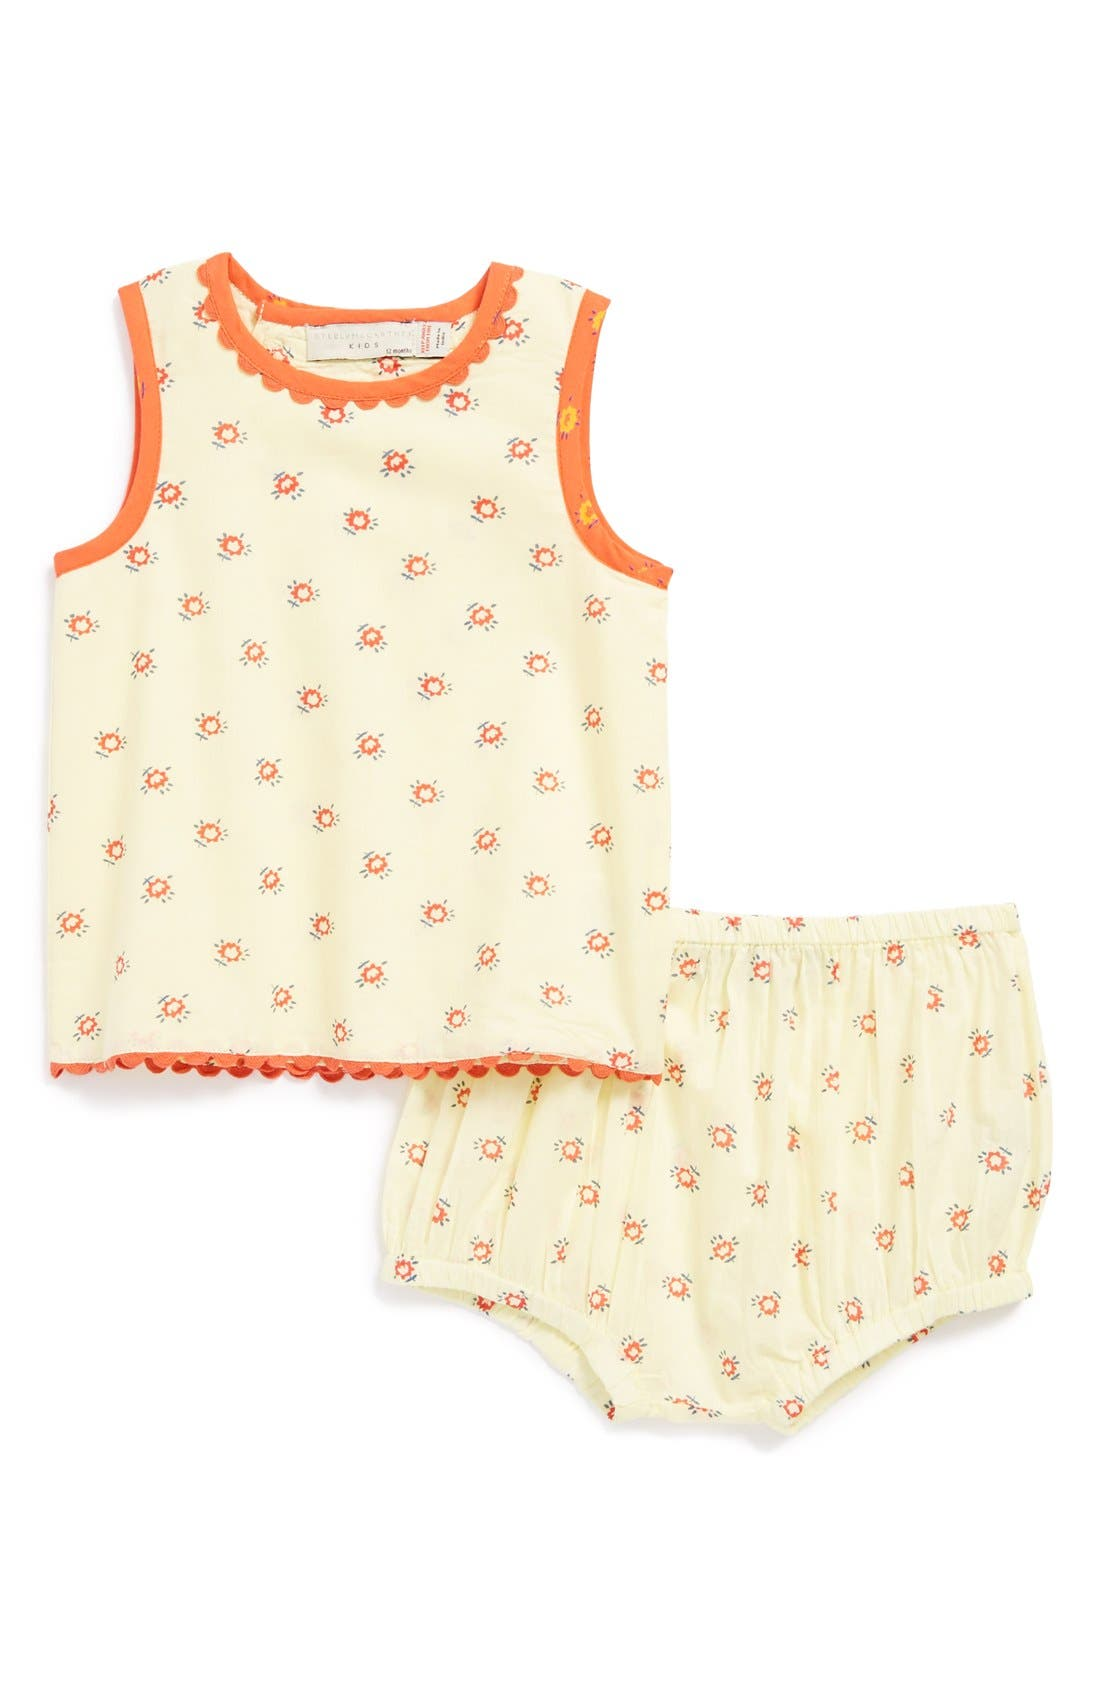 Alternate Image 1 Selected - Stella McCartney Kids 'Trixie' Tank Top & Bloomers (Baby Girls)